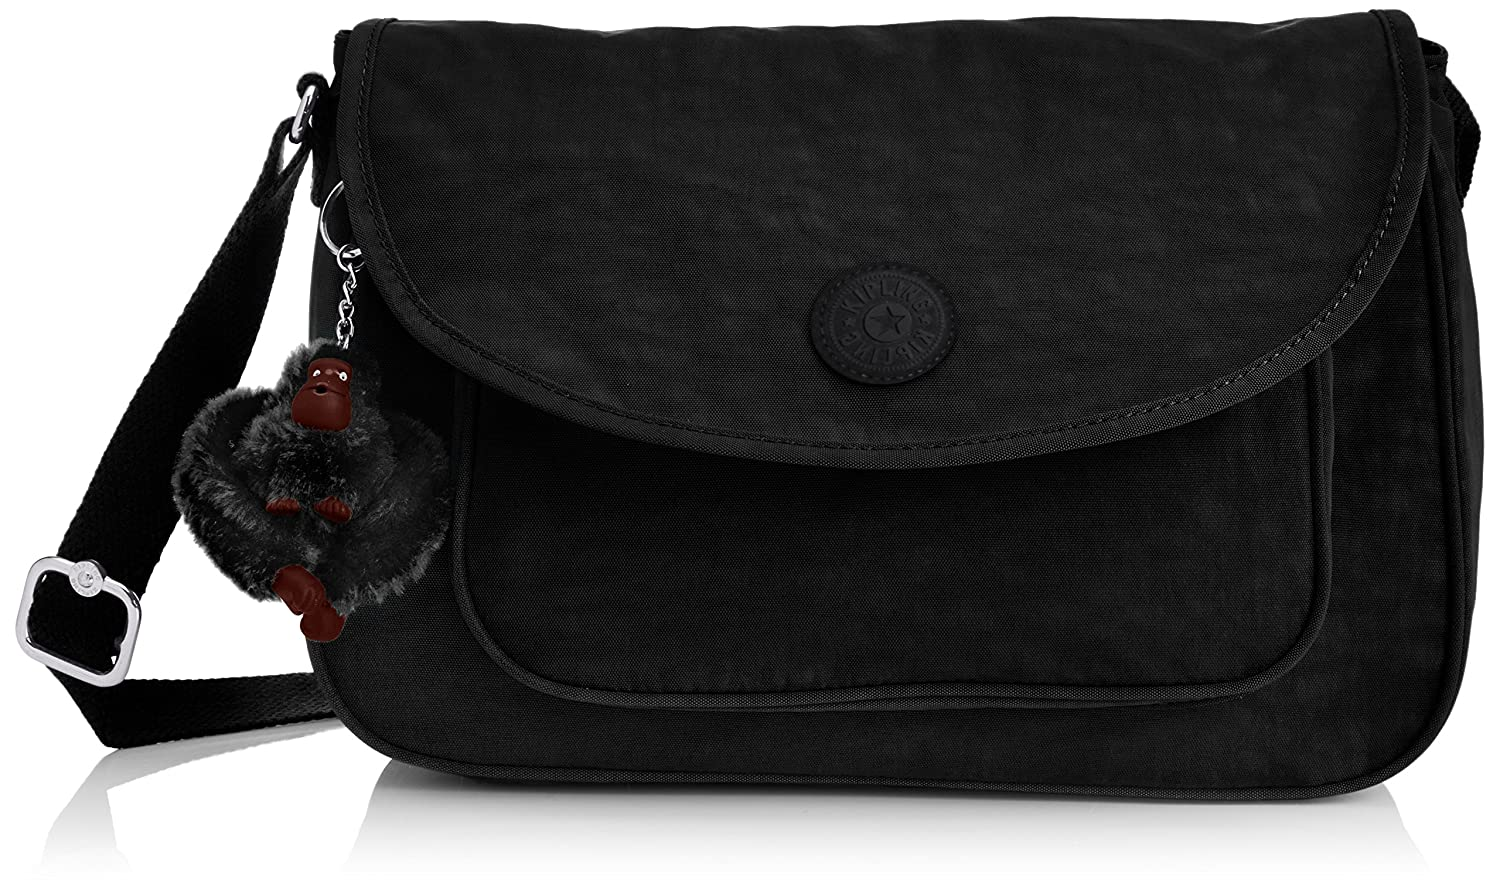 VIDA Statement Bag - Toledo by VIDA